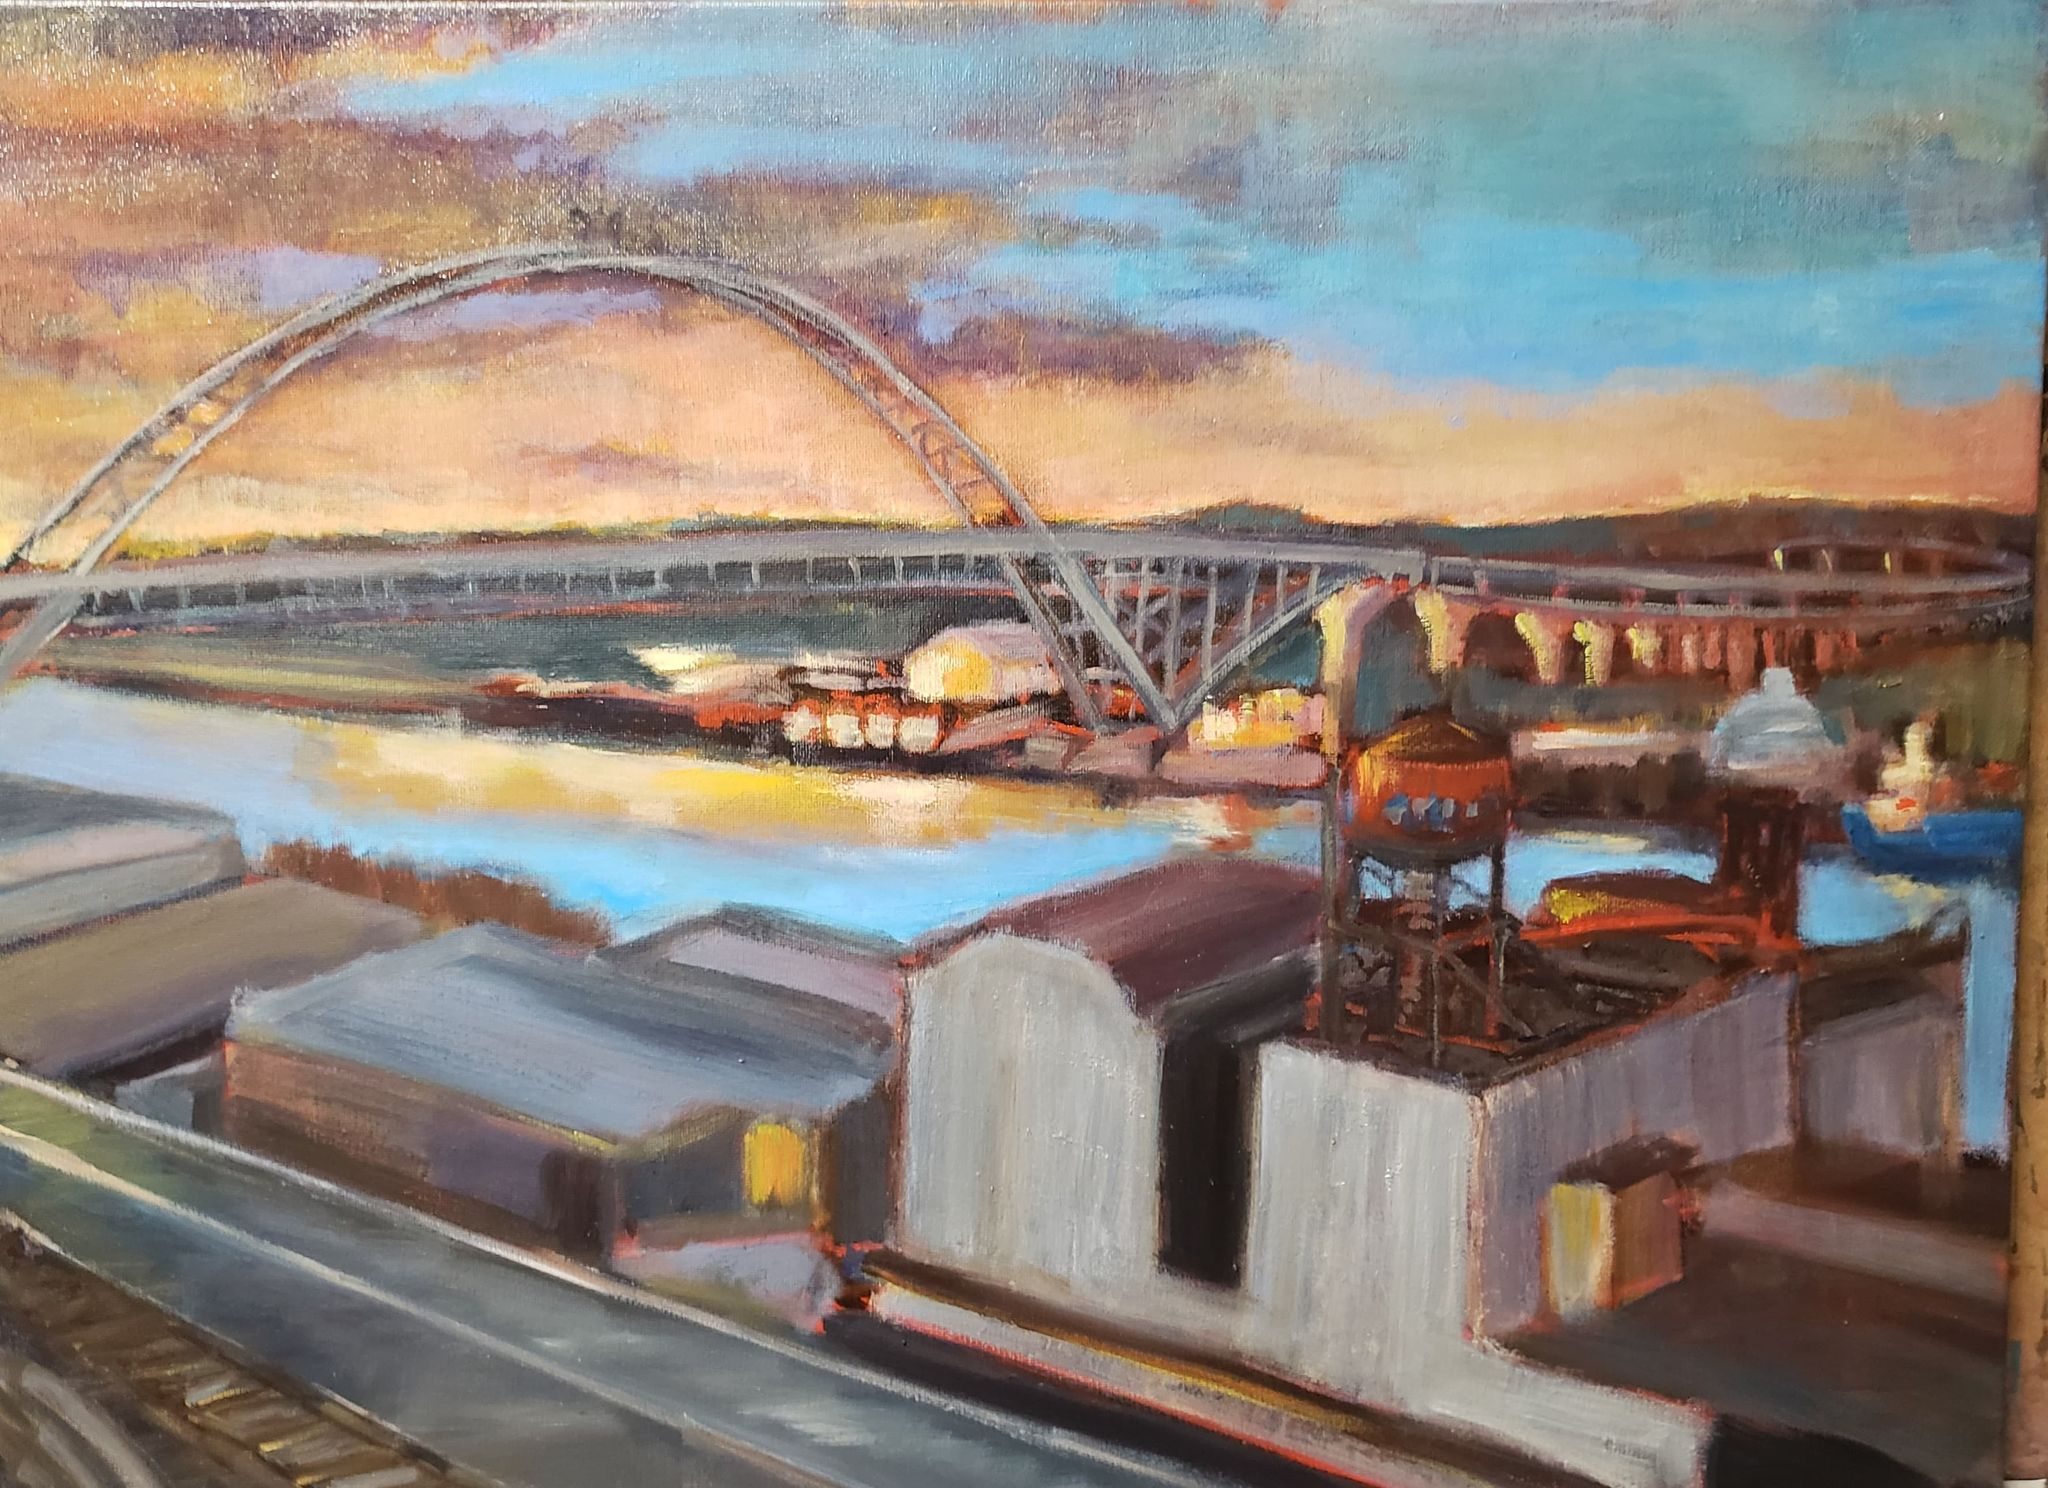 "Bridging industry (The Fremont) - 18x24"" - $500"